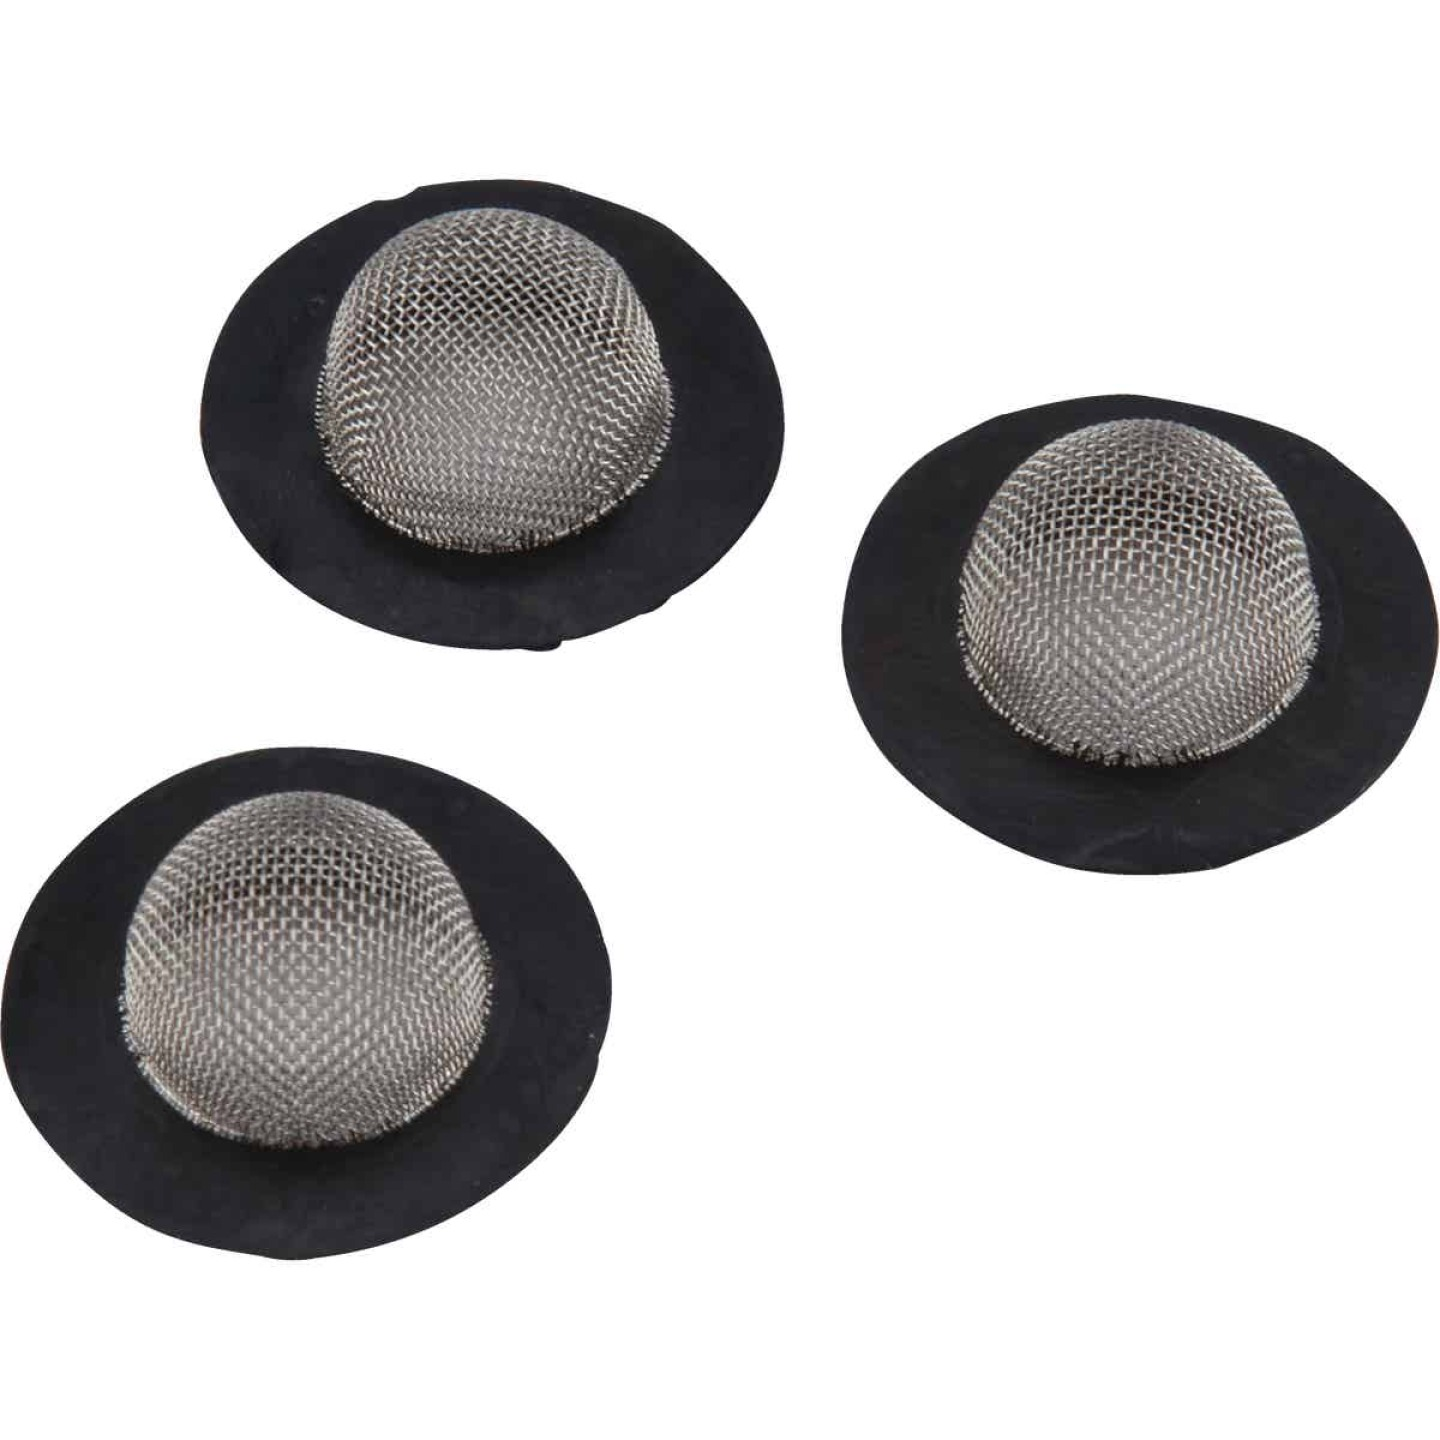 Camco Stainless Steel Mesh 1 In. RV Washer with Filter, (3-Pack) Image 1